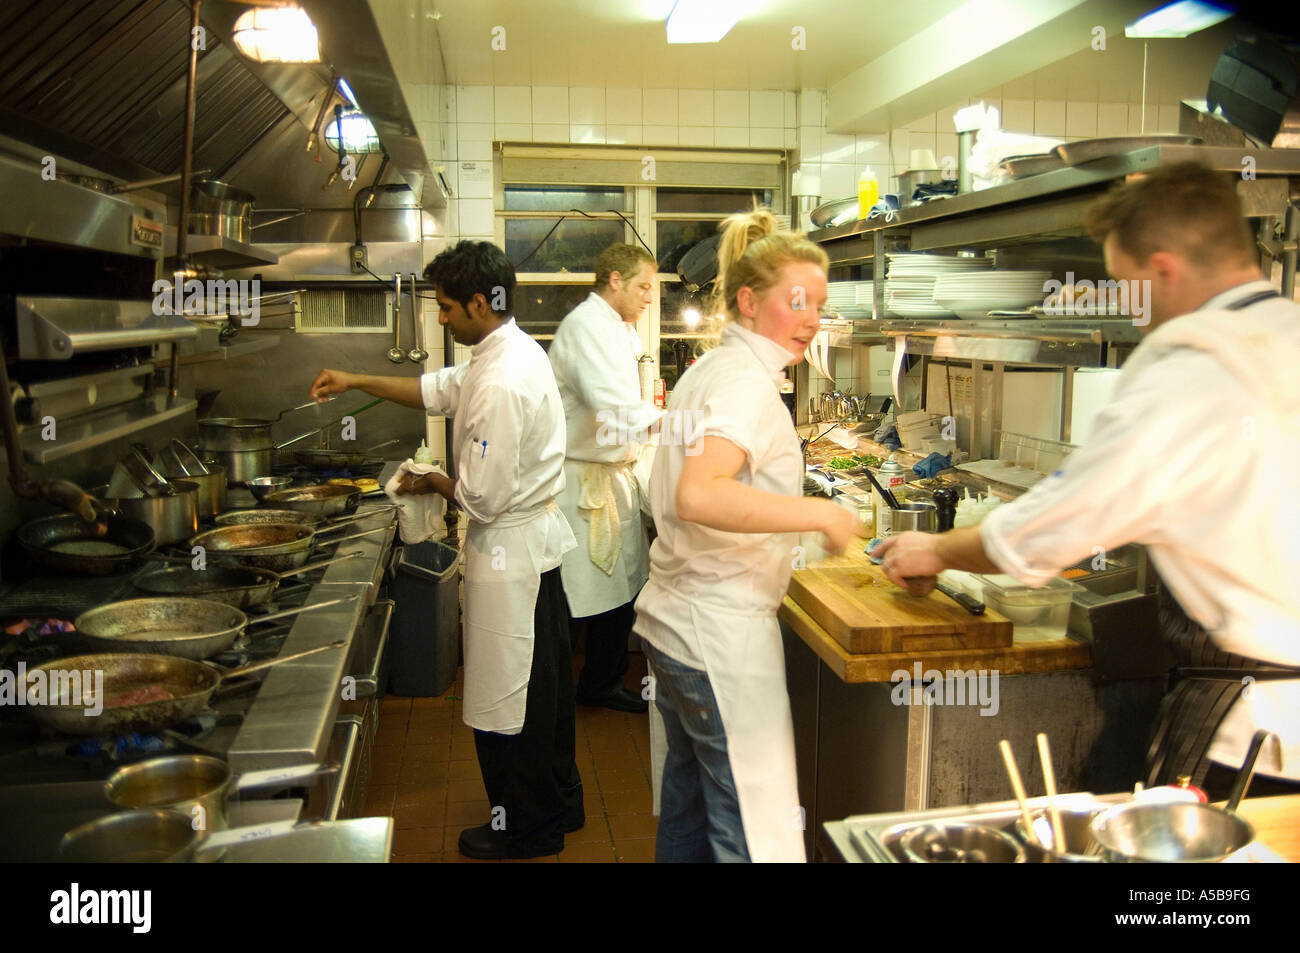 Restaurant Kitchen Staff team of restaurant kitchen staff busy at work stock photo, royalty